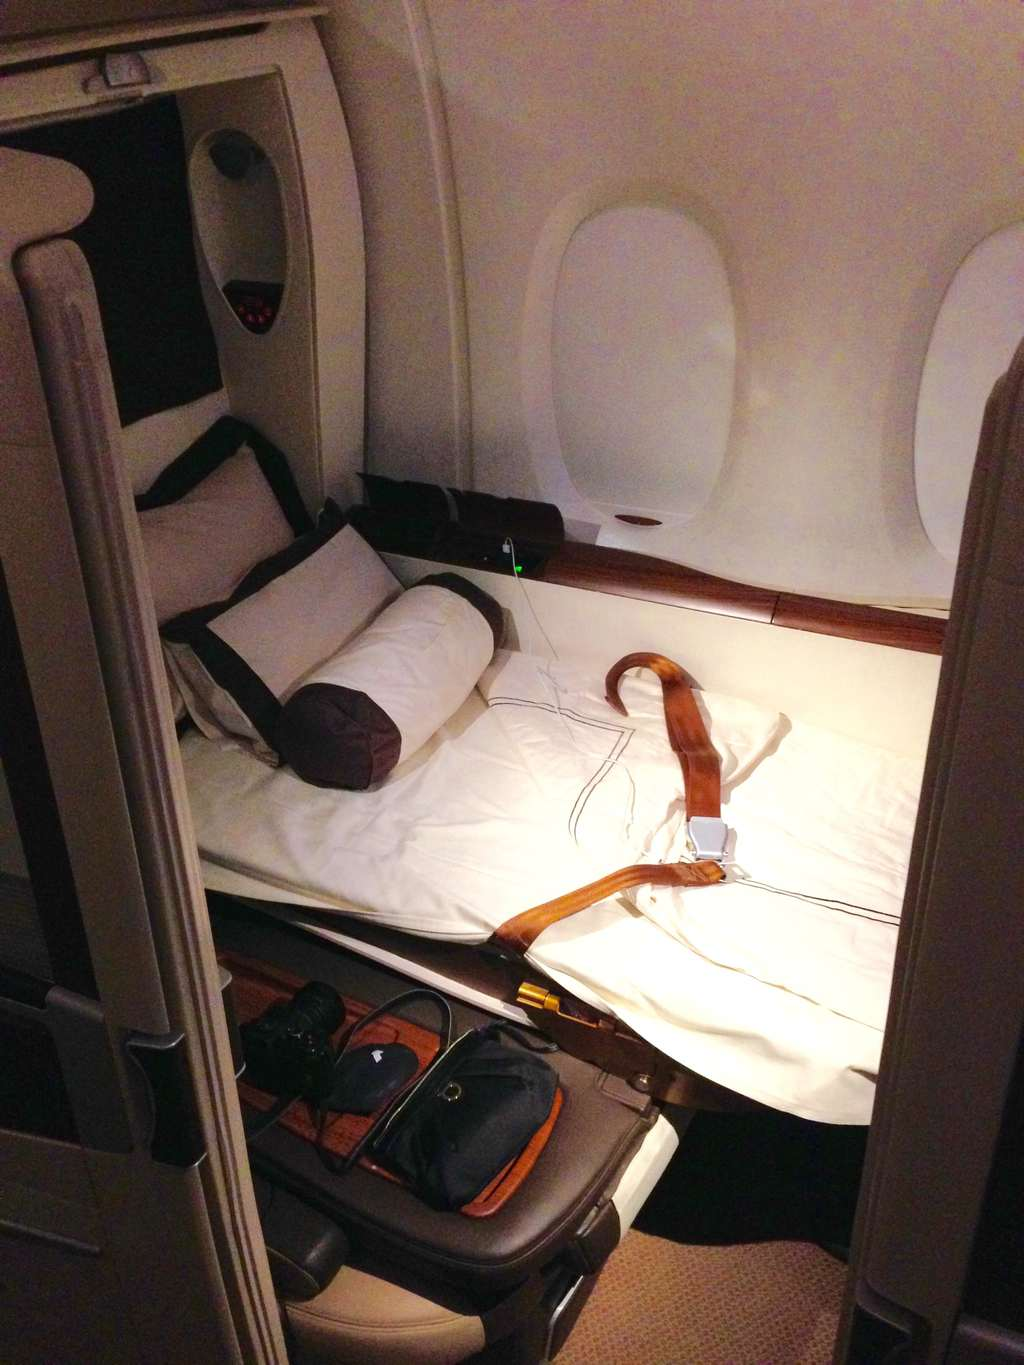 Making the bed Singapore Airlines Suites review